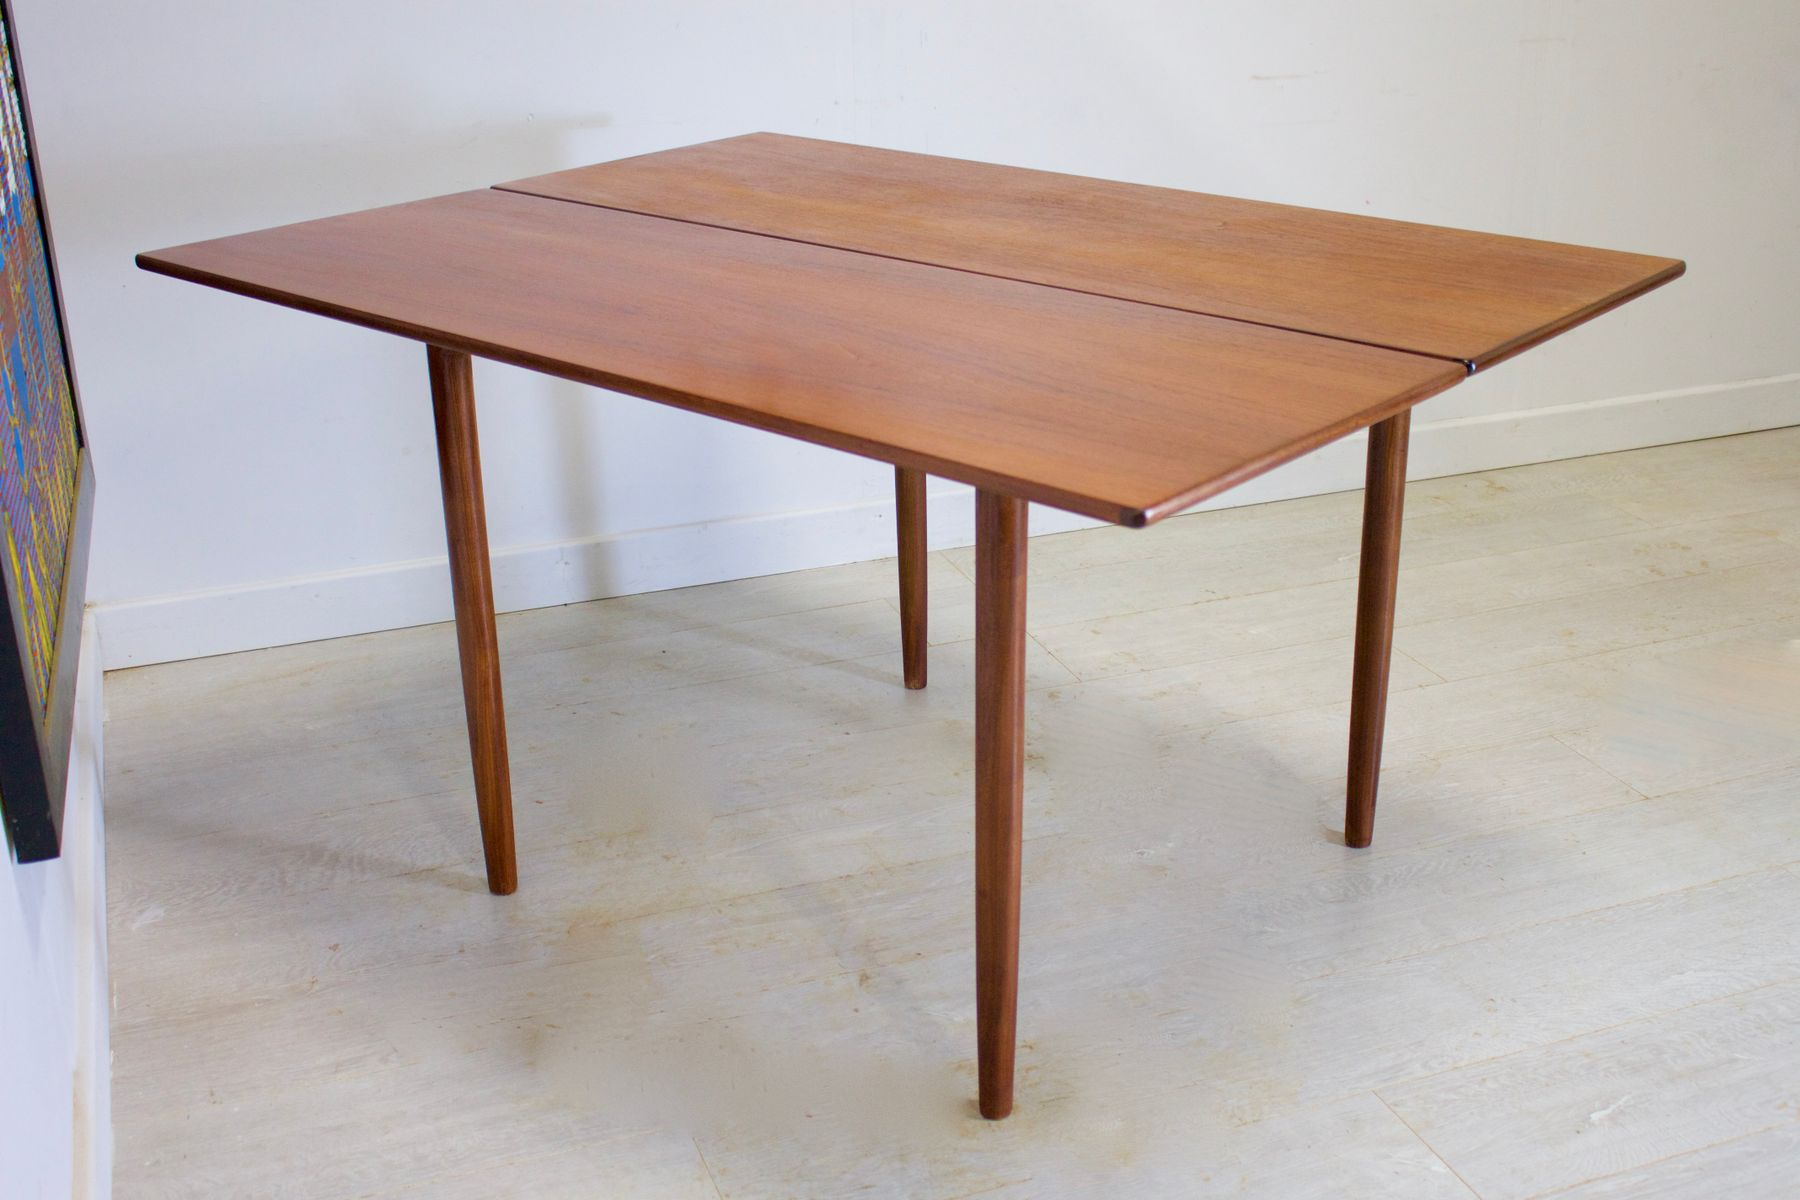 Mid century teak drop leaf dining table by kofod larsen for g plan 1960s